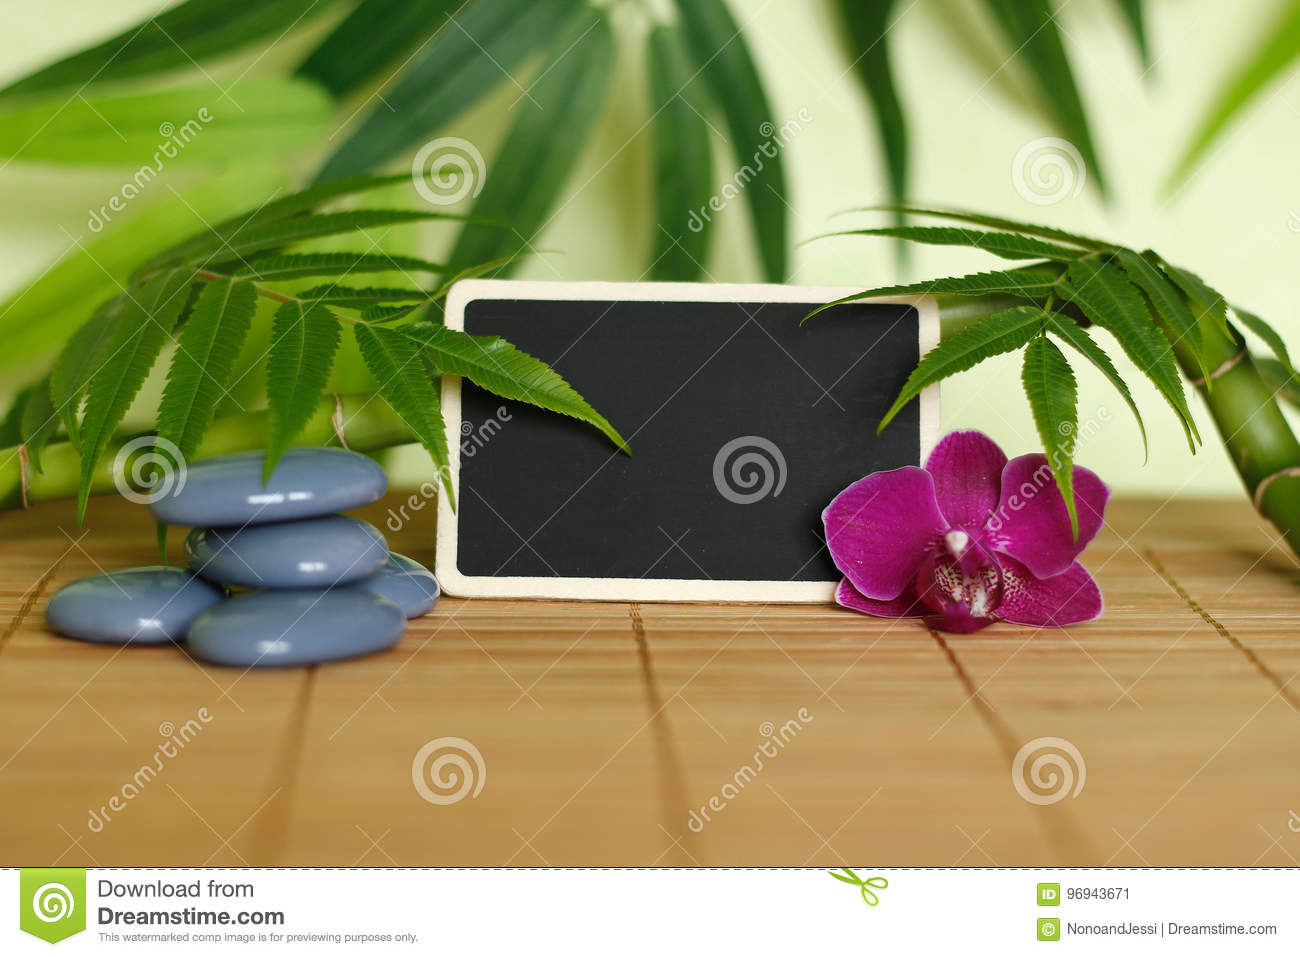 Gray stones arranged in Zen lifestyle with an orchid, a lighted candle, a bamboo branch and foliage and an empty message slate